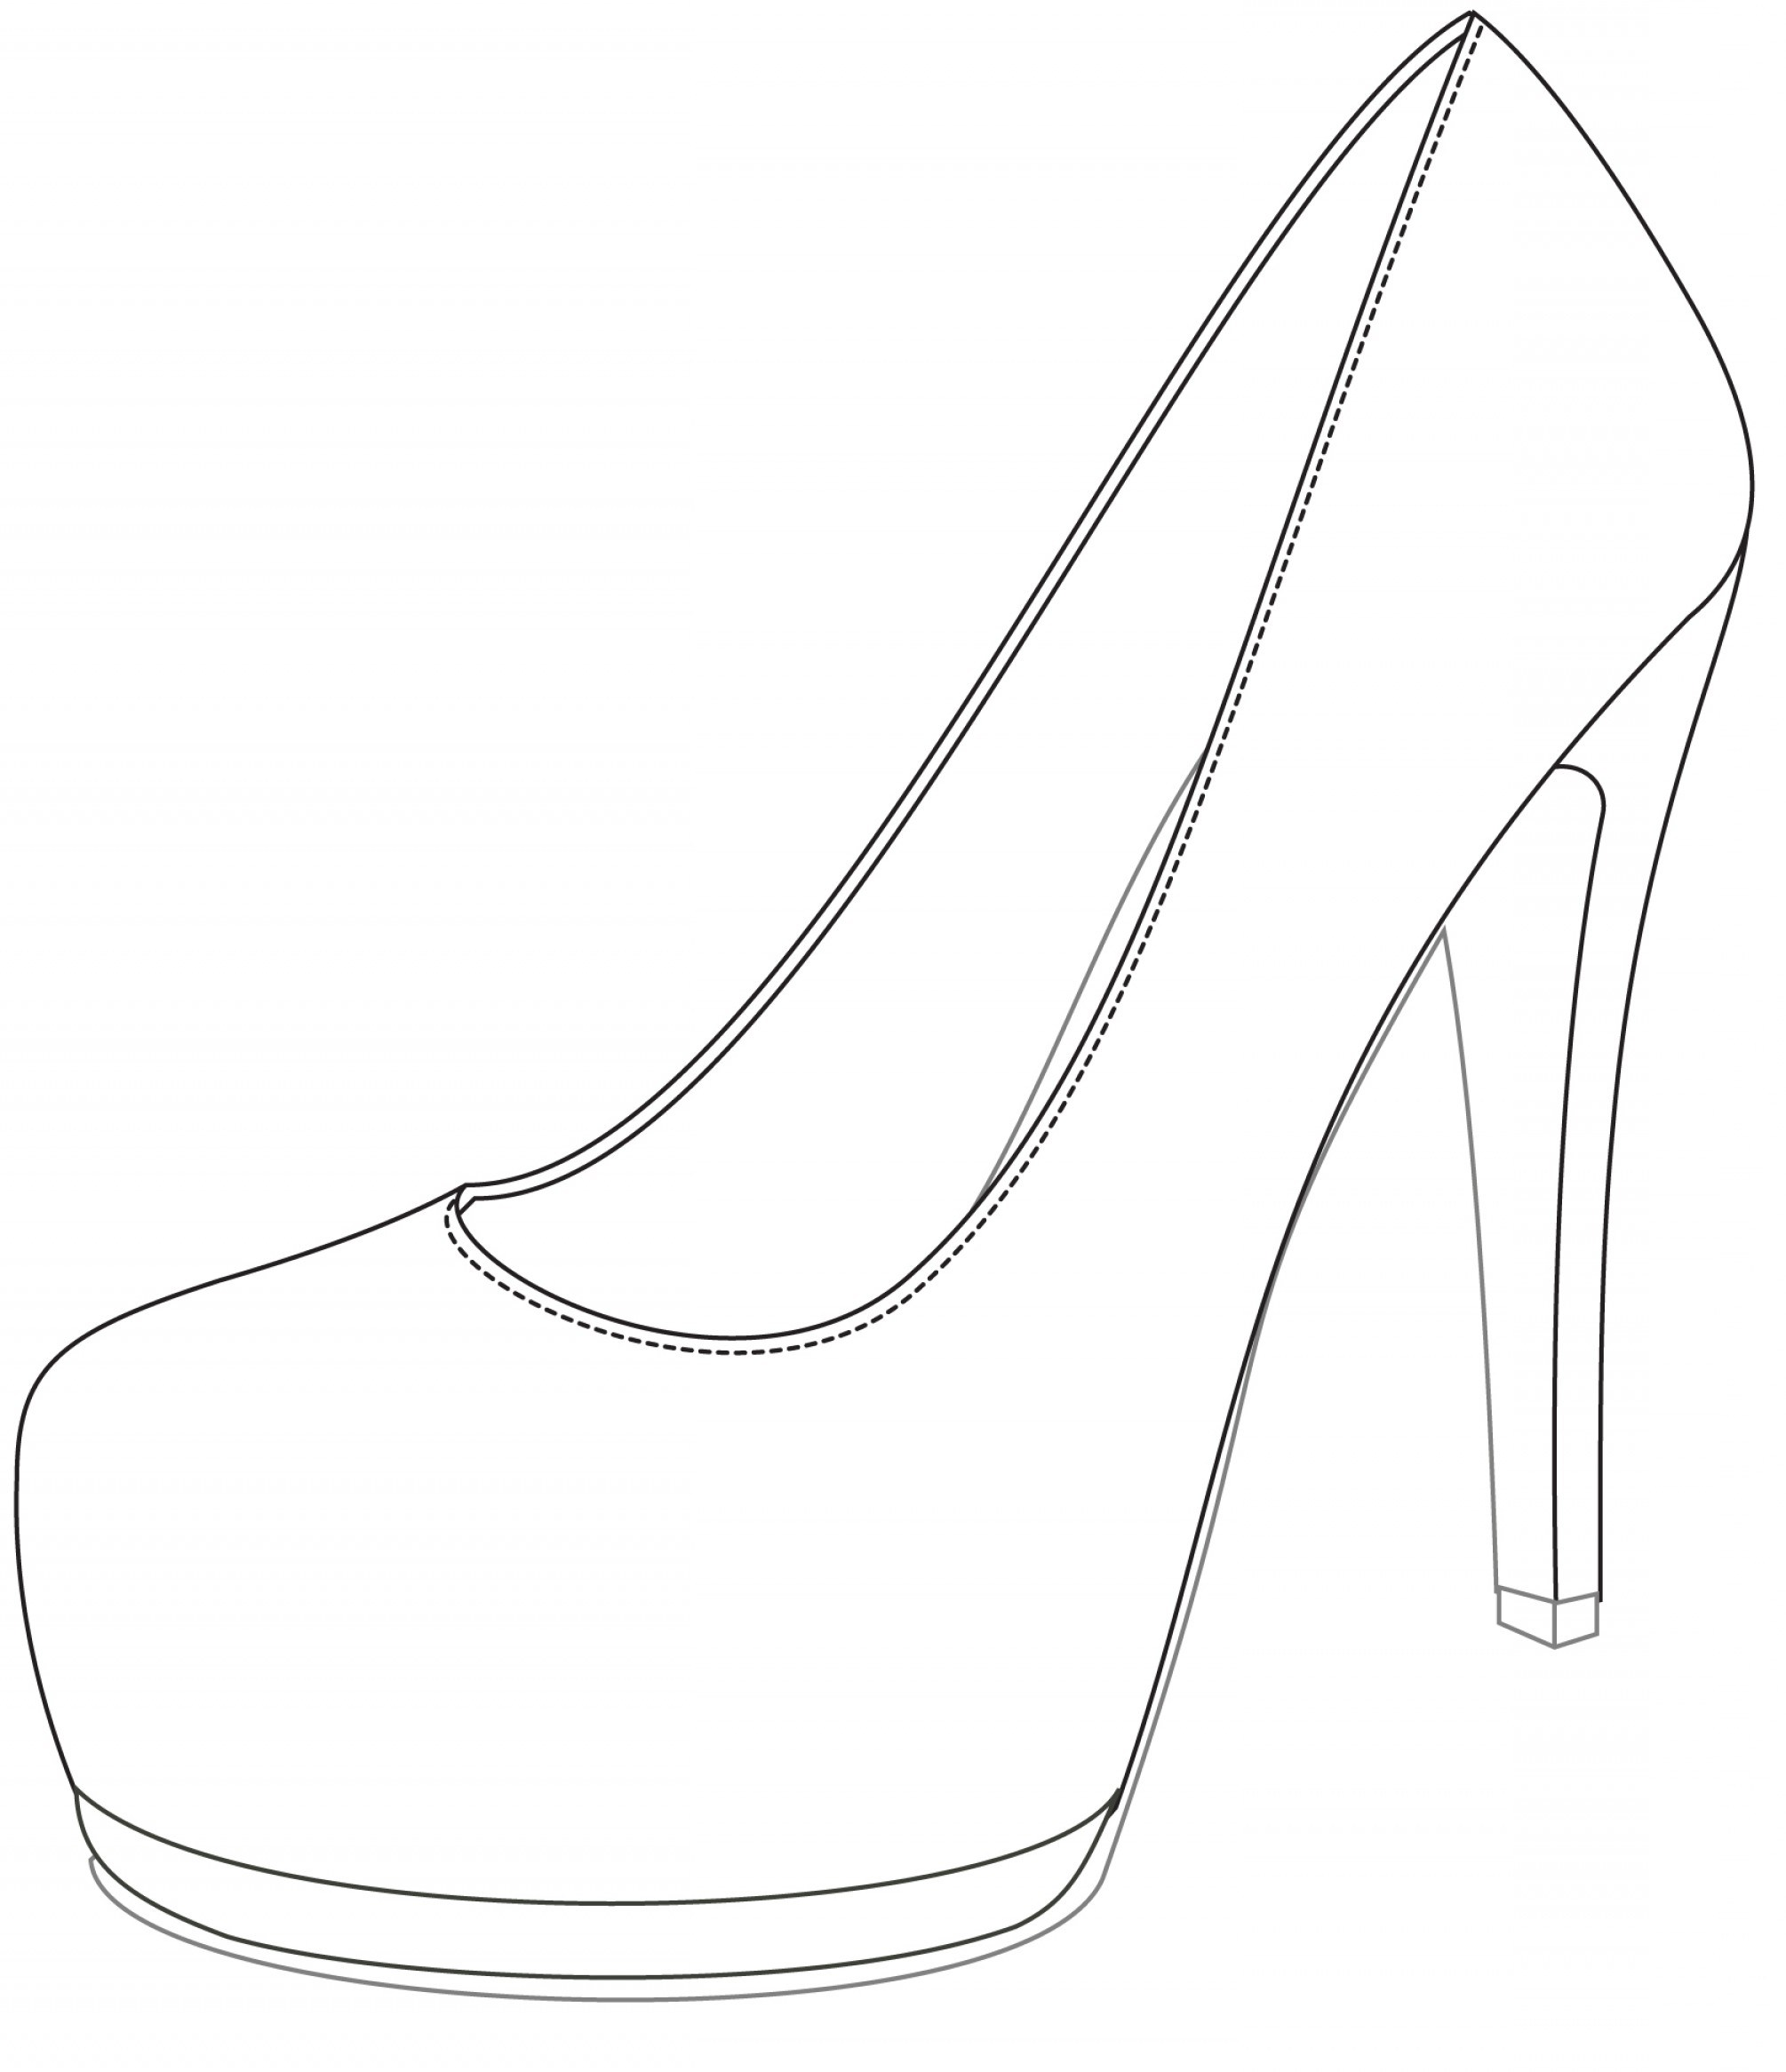 graphic regarding High Heel Shoe Template Printable known as Shoe Drawing Template Absolutely free down load least complicated Shoe Drawing